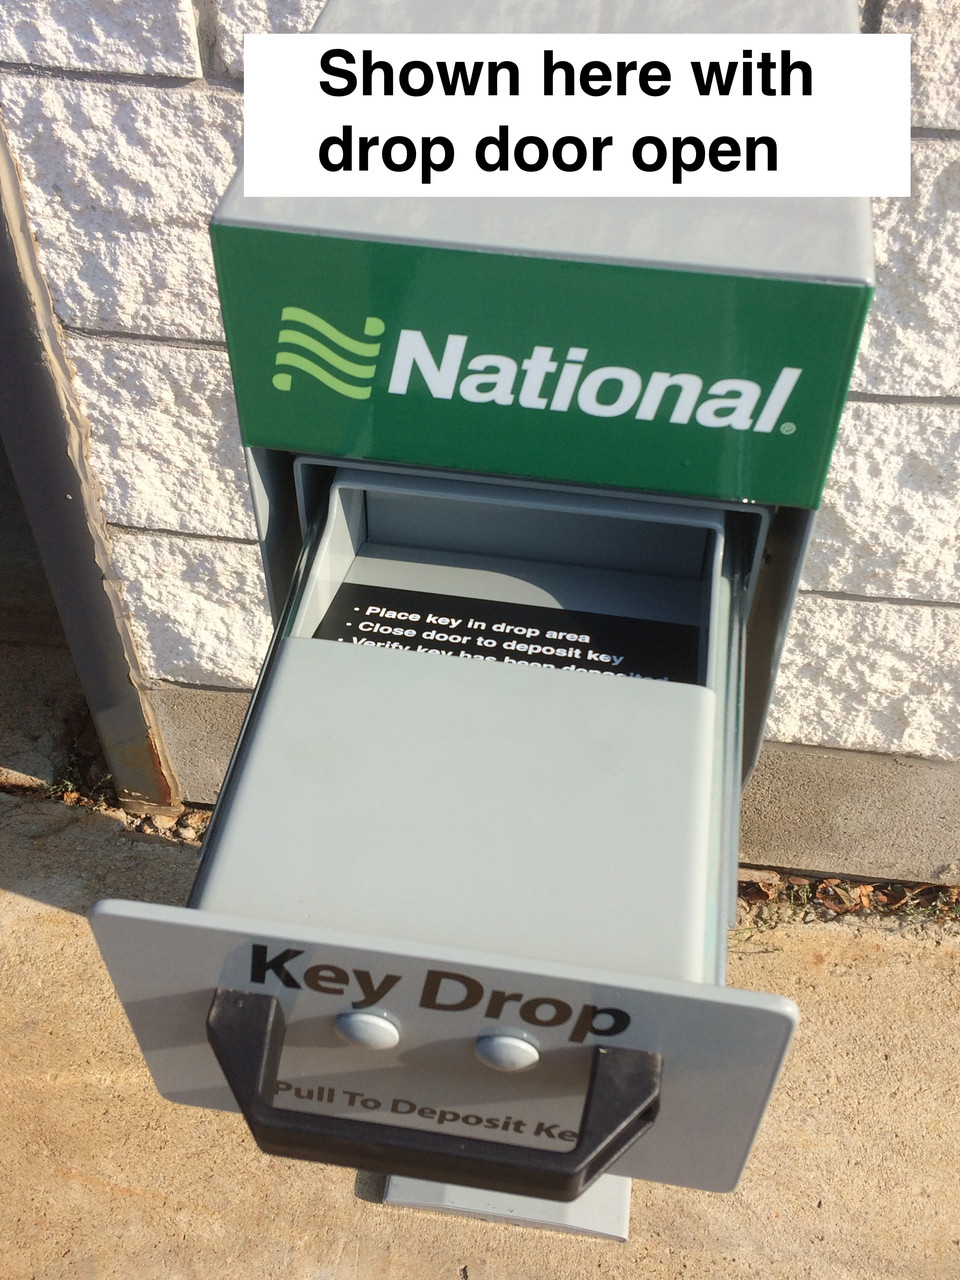 Secure Key Drop Box with Post hopper drop opened